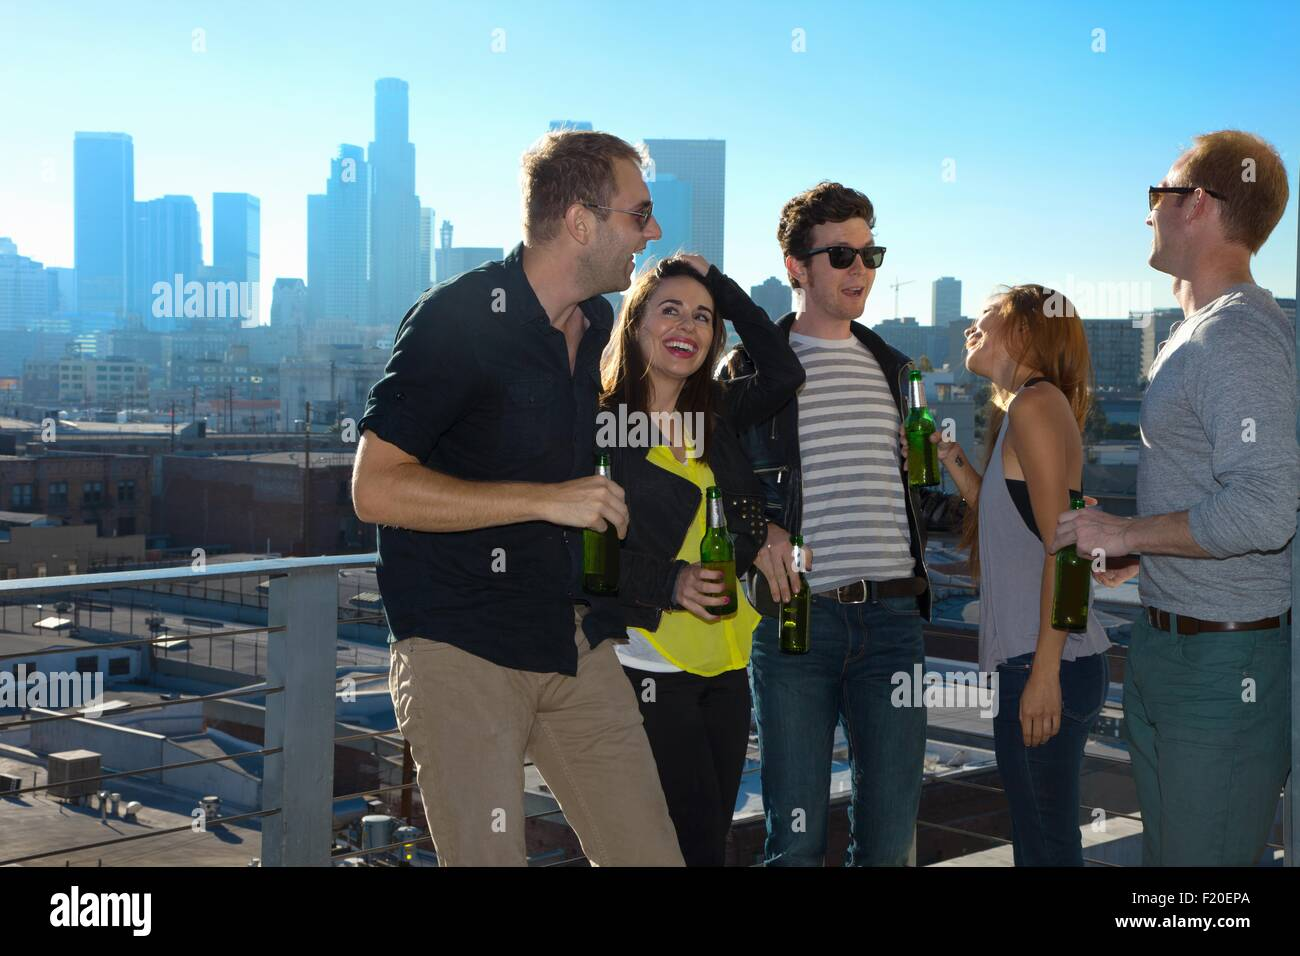 Five adult friends flirting and drinking beer at rooftop bar with Los Angeles skyline, USA - Stock Image